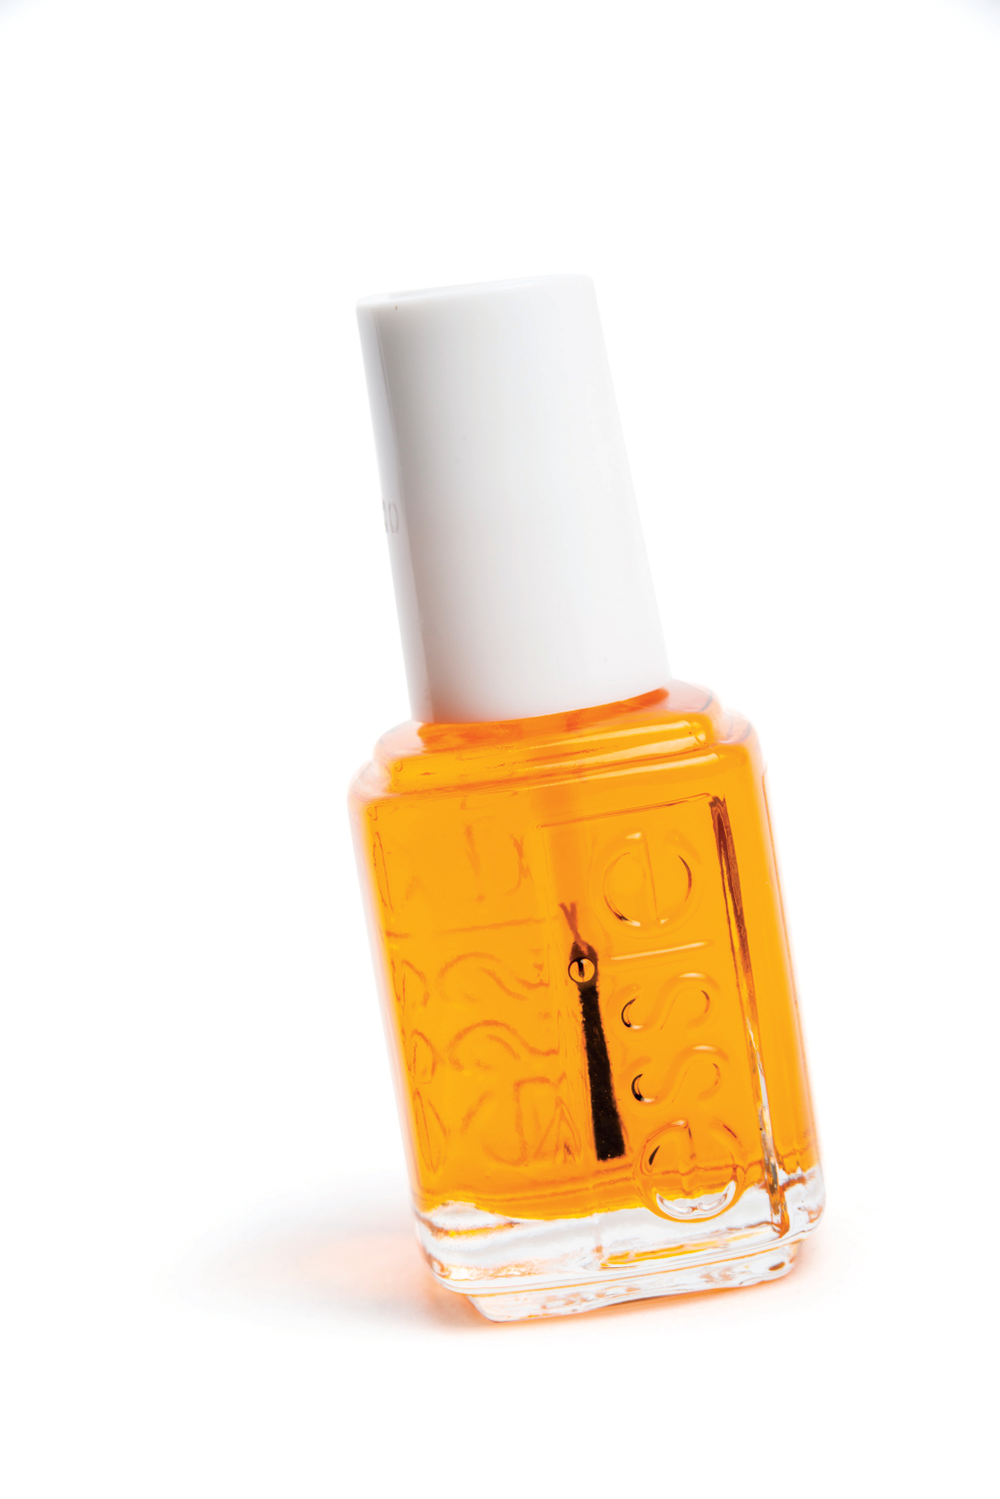 <p>Offer your clients an instant spa service for nails with Essie&rsquo;s newly reformulated Apricot Cuticle Oil. The formula features 75% apricot kernel oil that revitalizes, hydrates, and conditions nails without a greasy residue.&nbsp;</p>